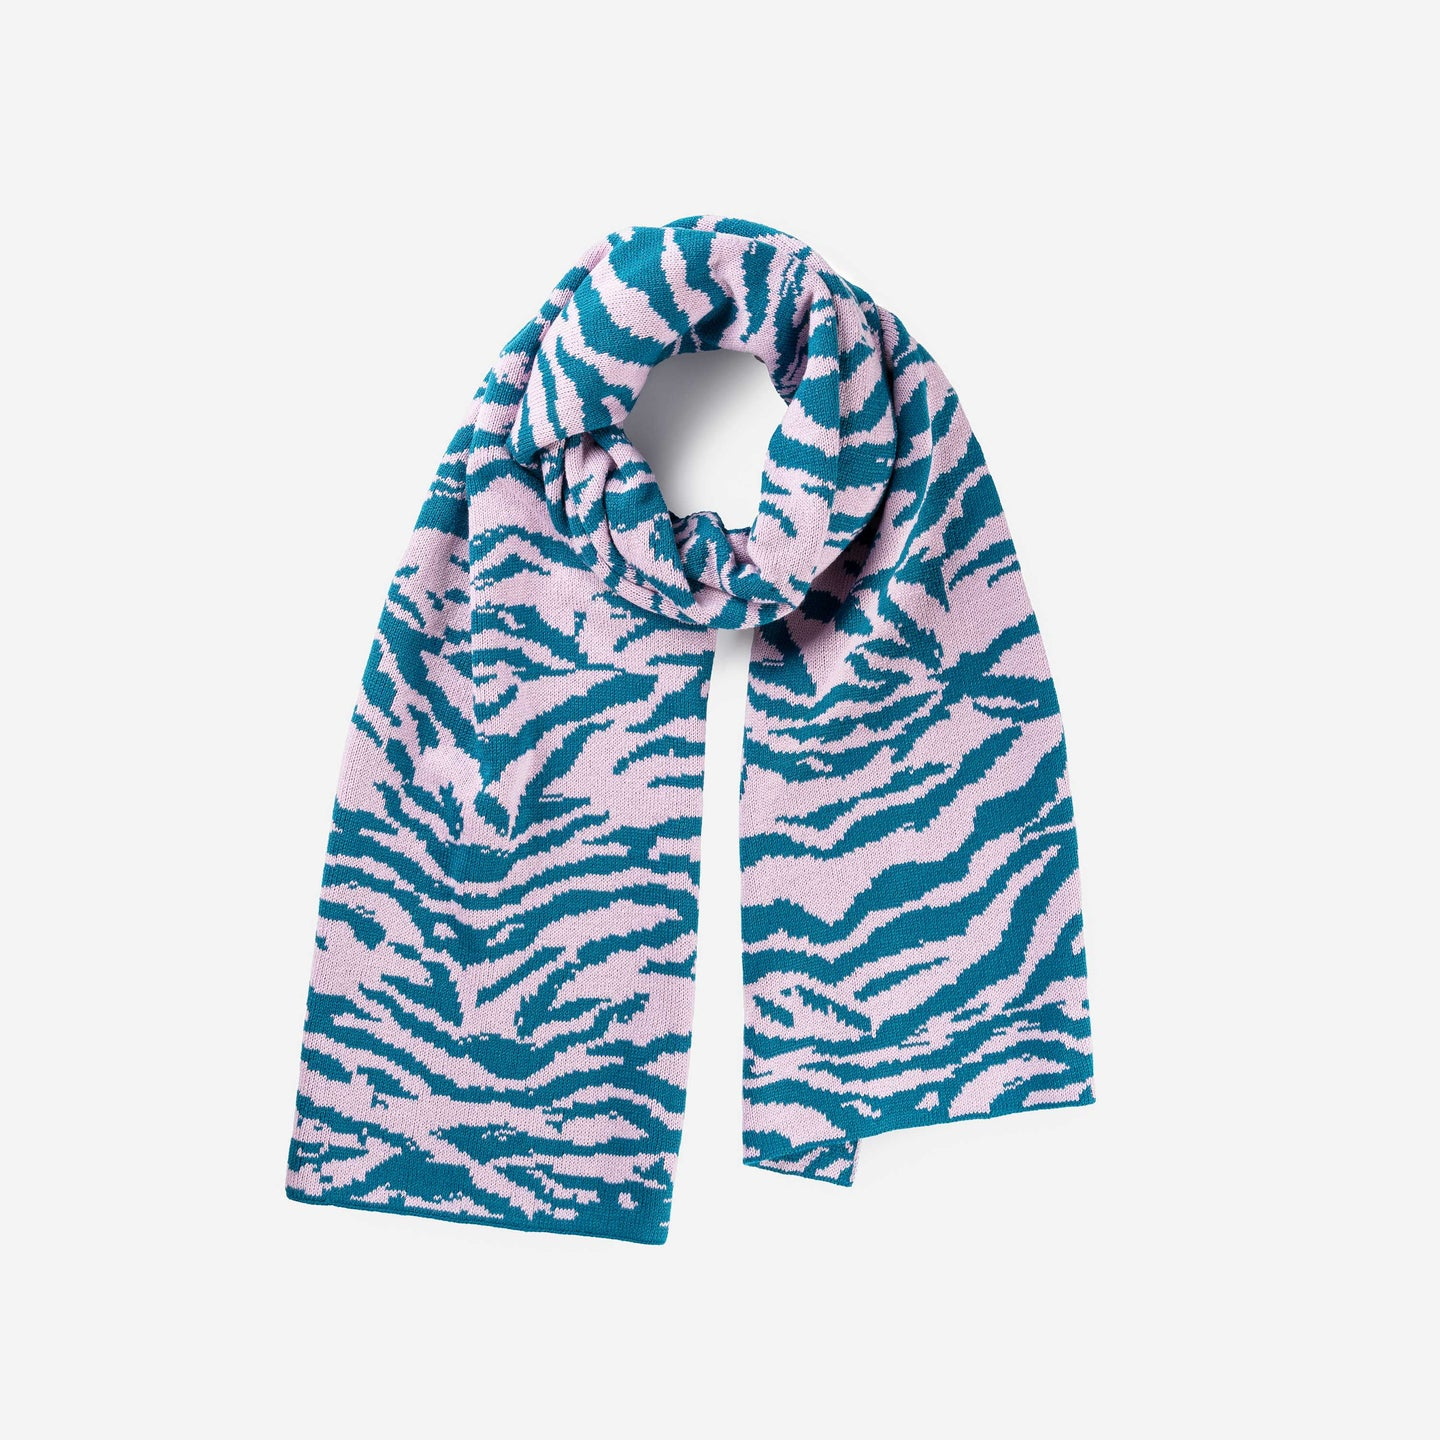 Tiger Stripe Scarf Jacquard Knit Pattern